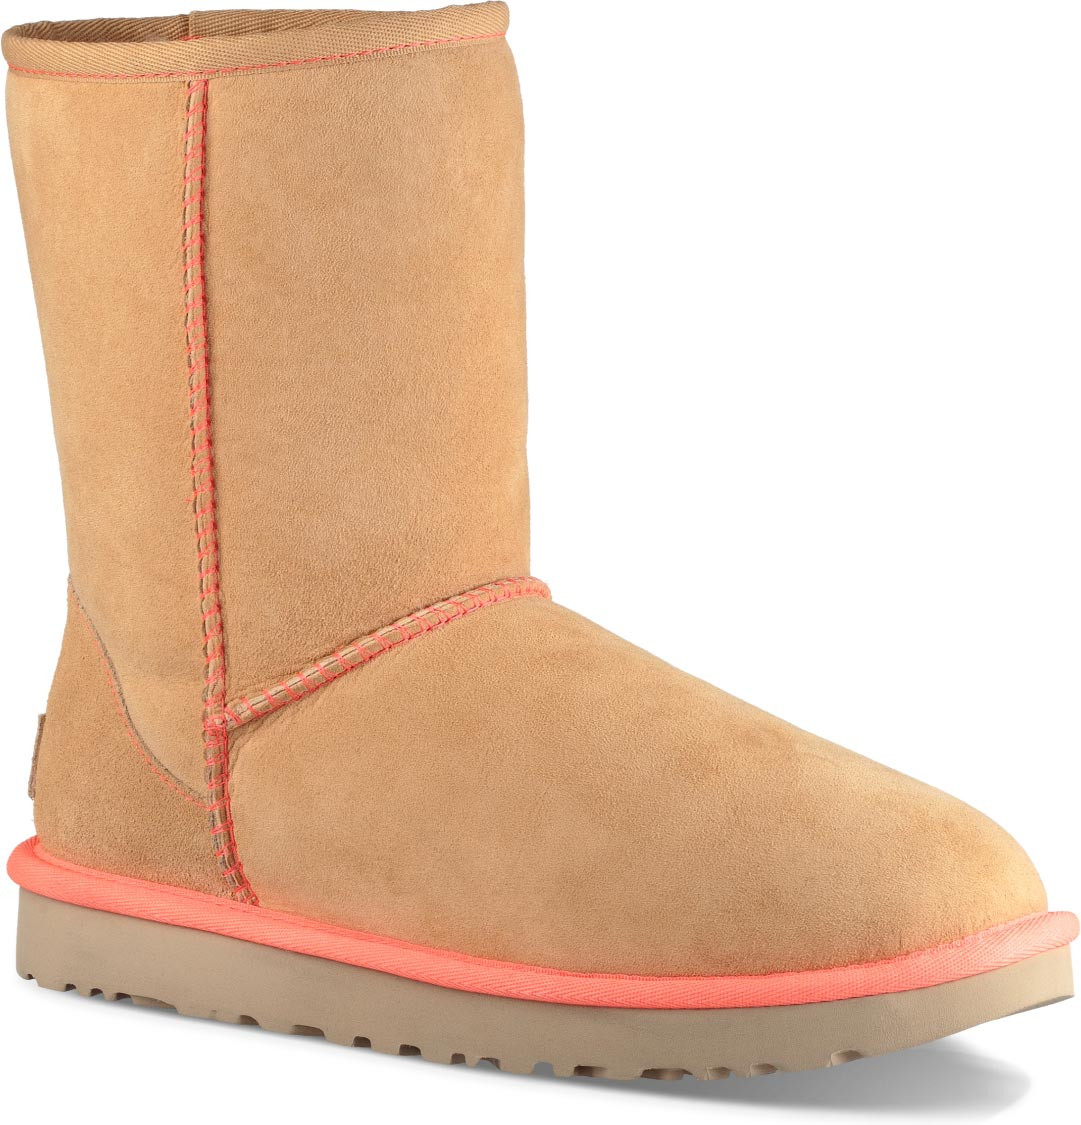 ... UGG Women's Classic Short II Neon. Canvas · Canvas · Chestnut · Pencil Lead · Soft Ochre